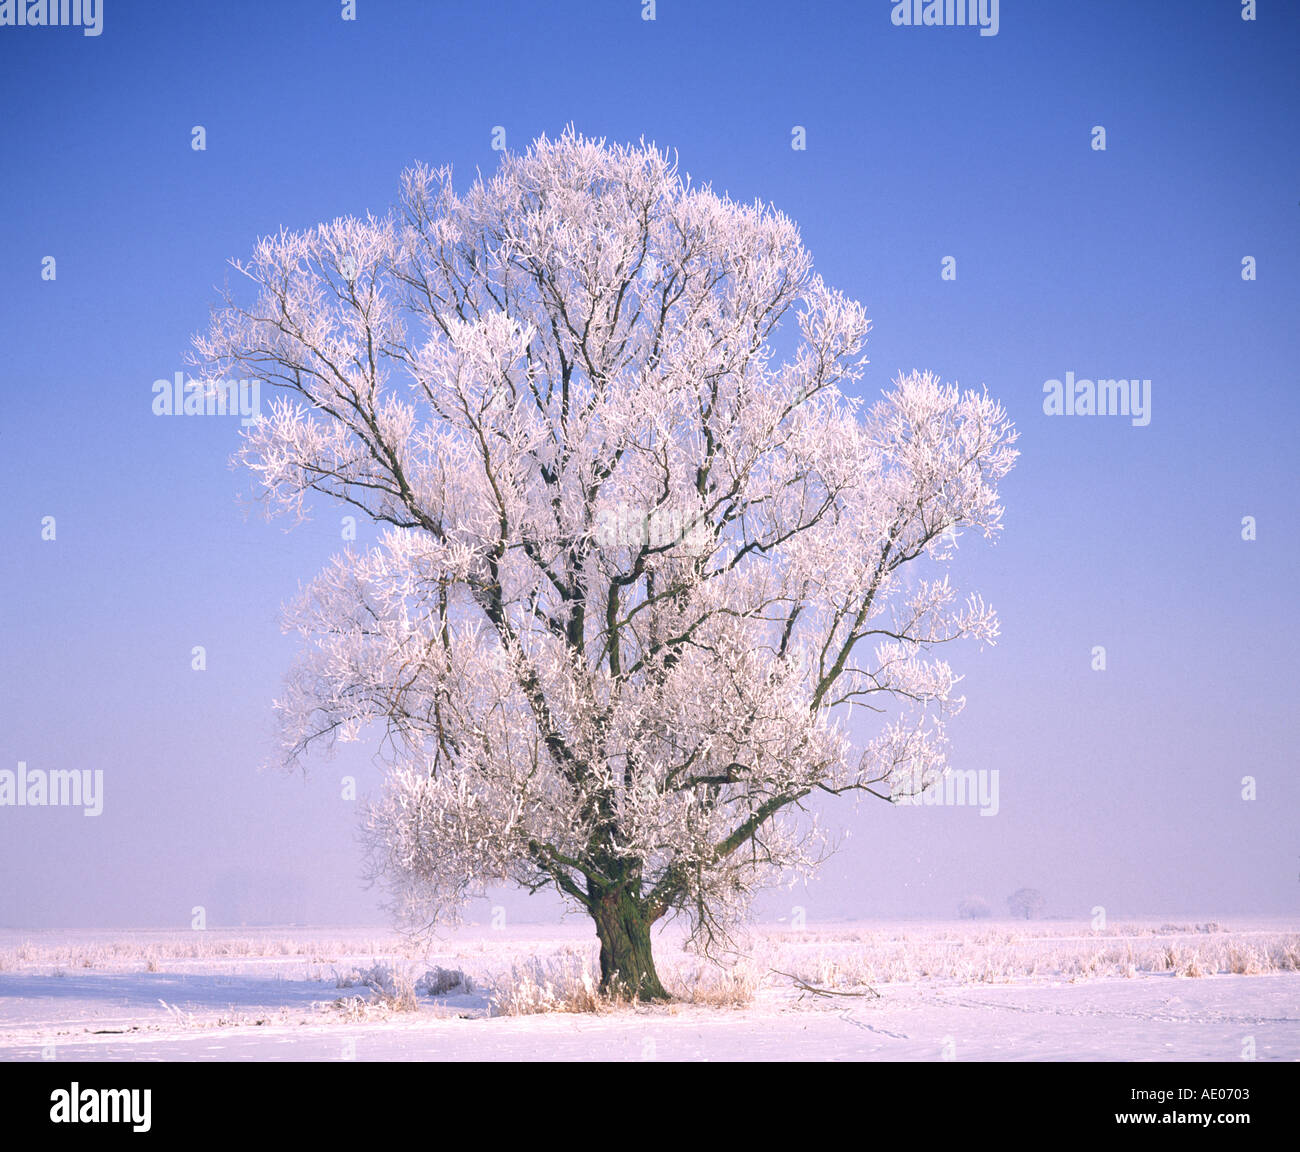 Eiskristalle auf Laubbaum crystals of ice on a broad leaved tree - Stock Image